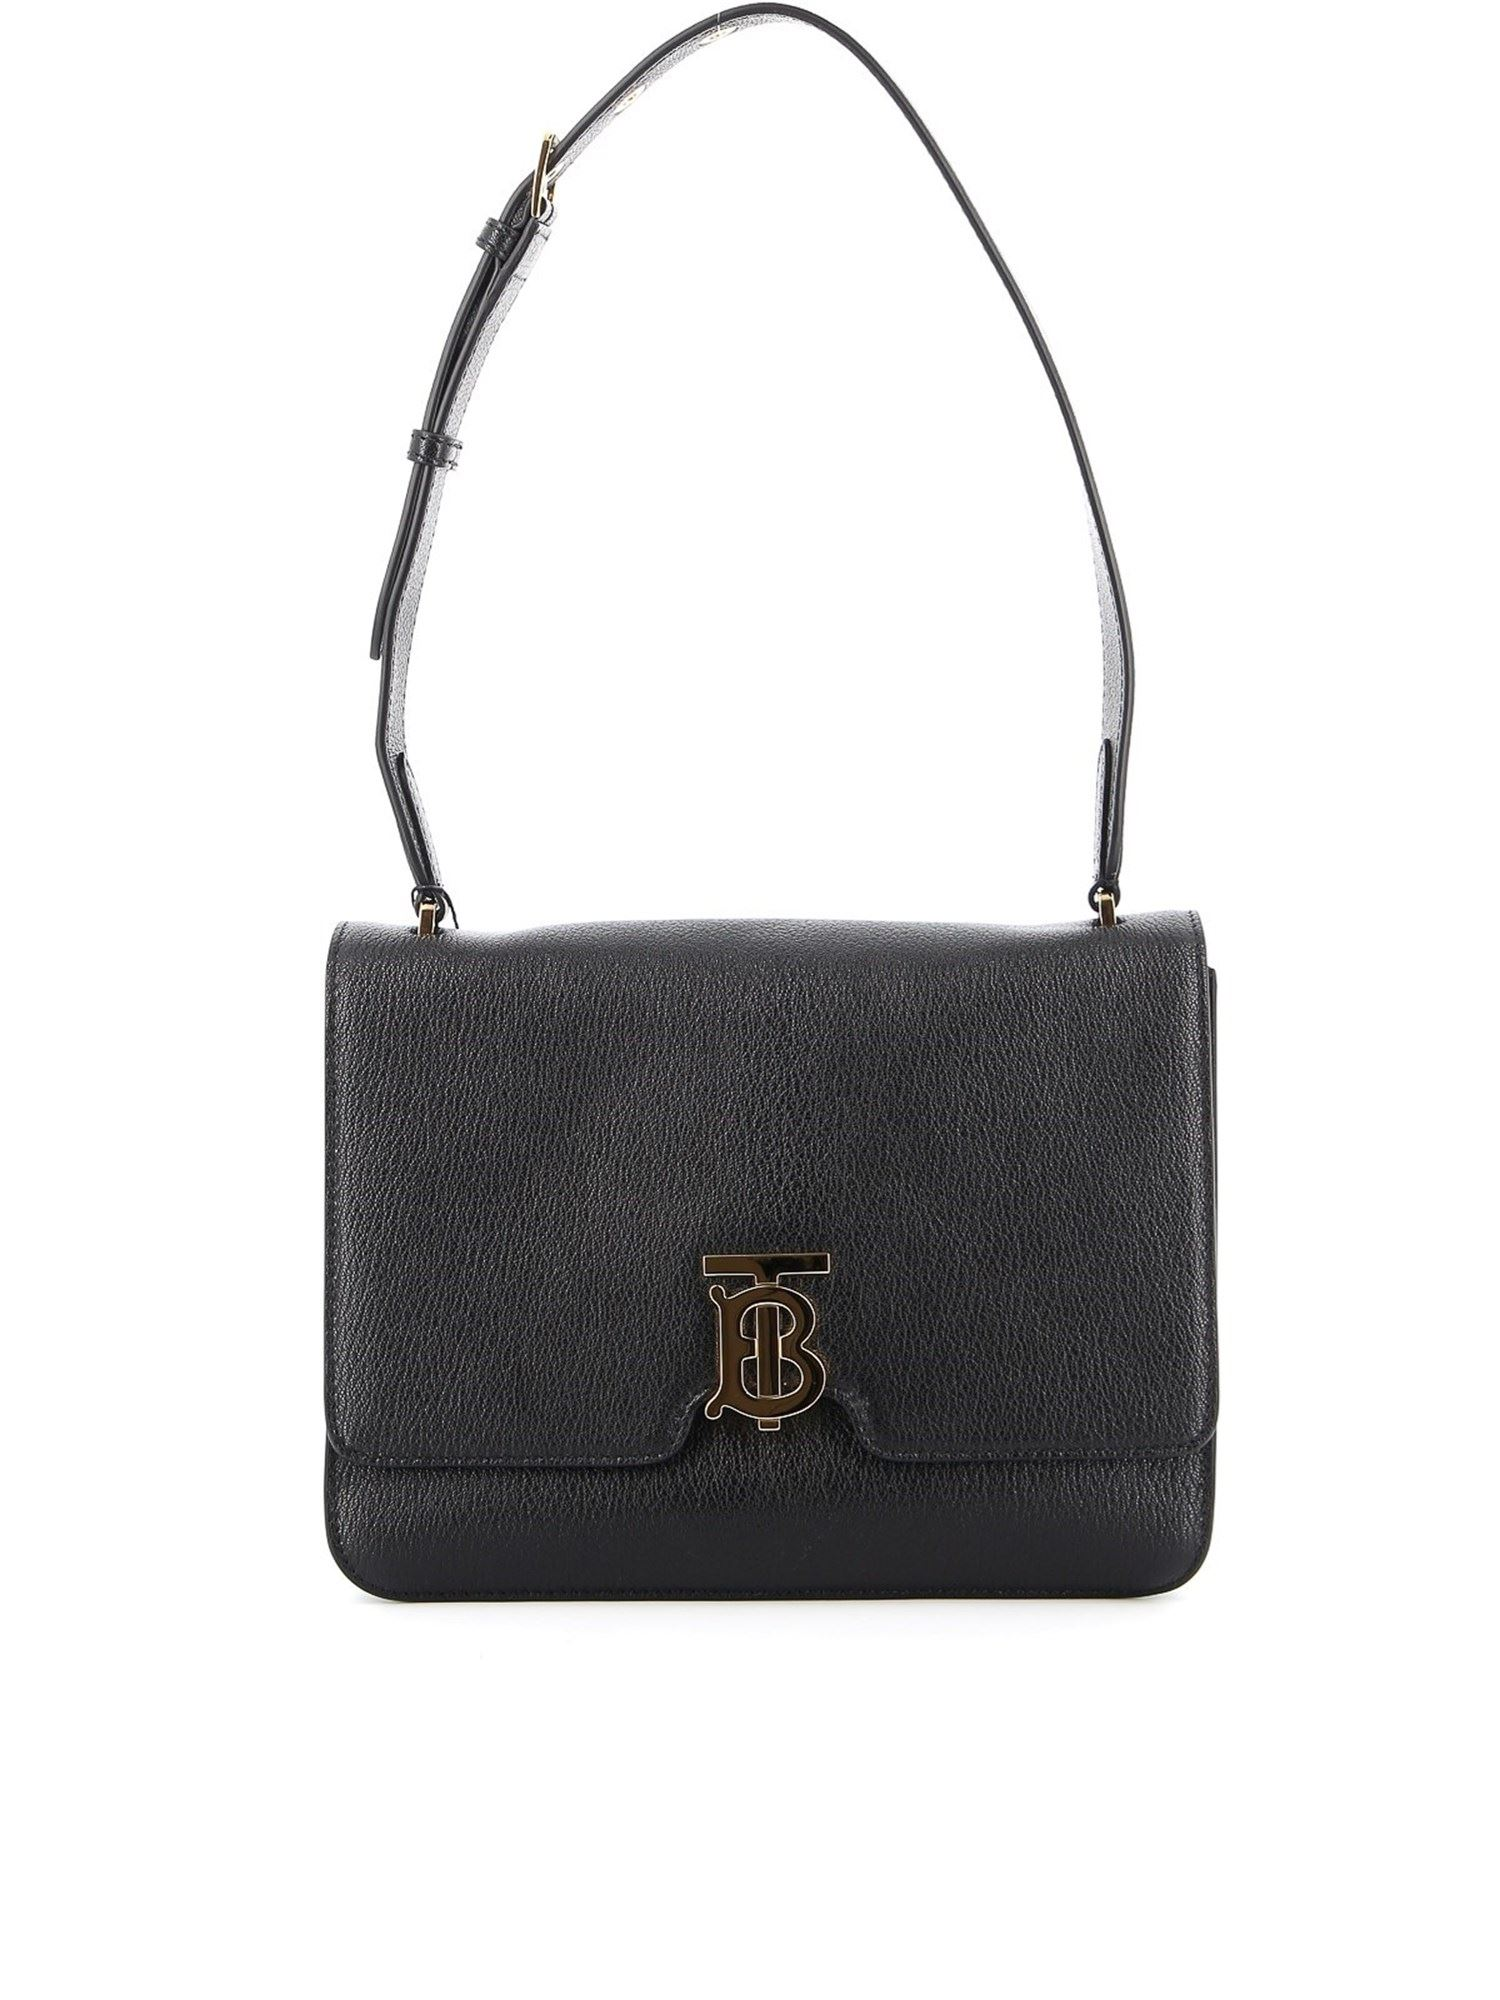 Burberry Alice Hammered Leather Bag In Black